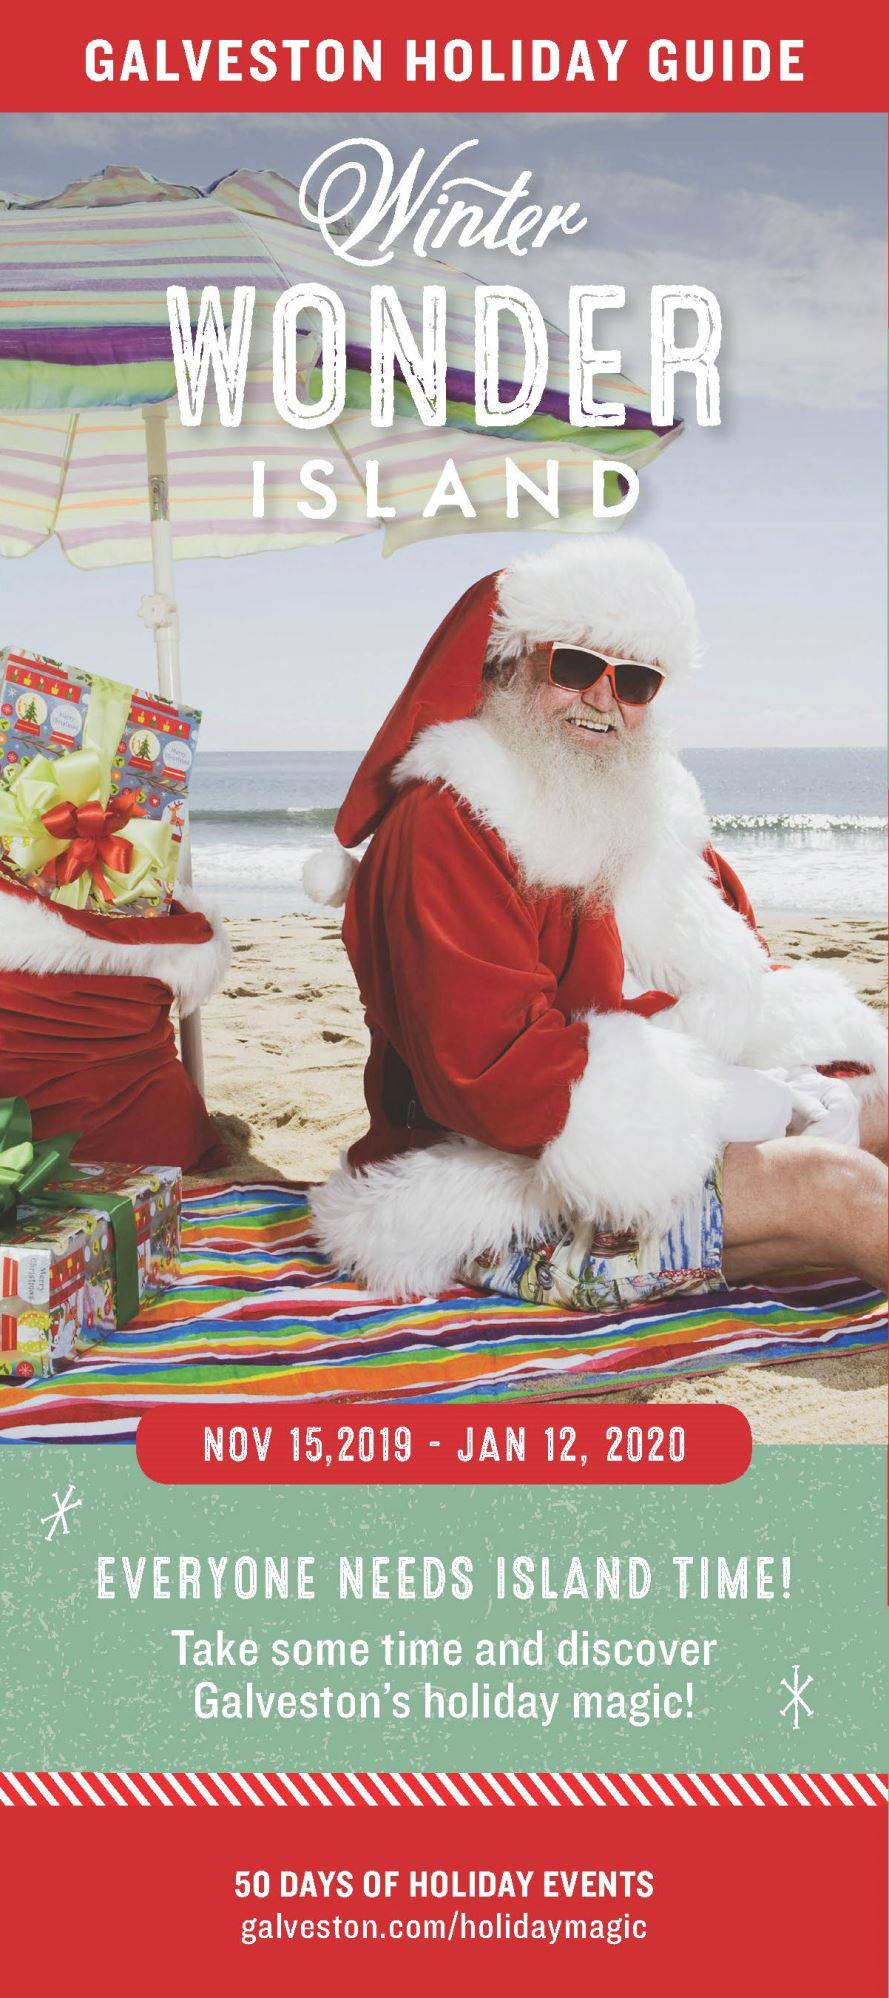 2019 Winter Wonder Island brochure front